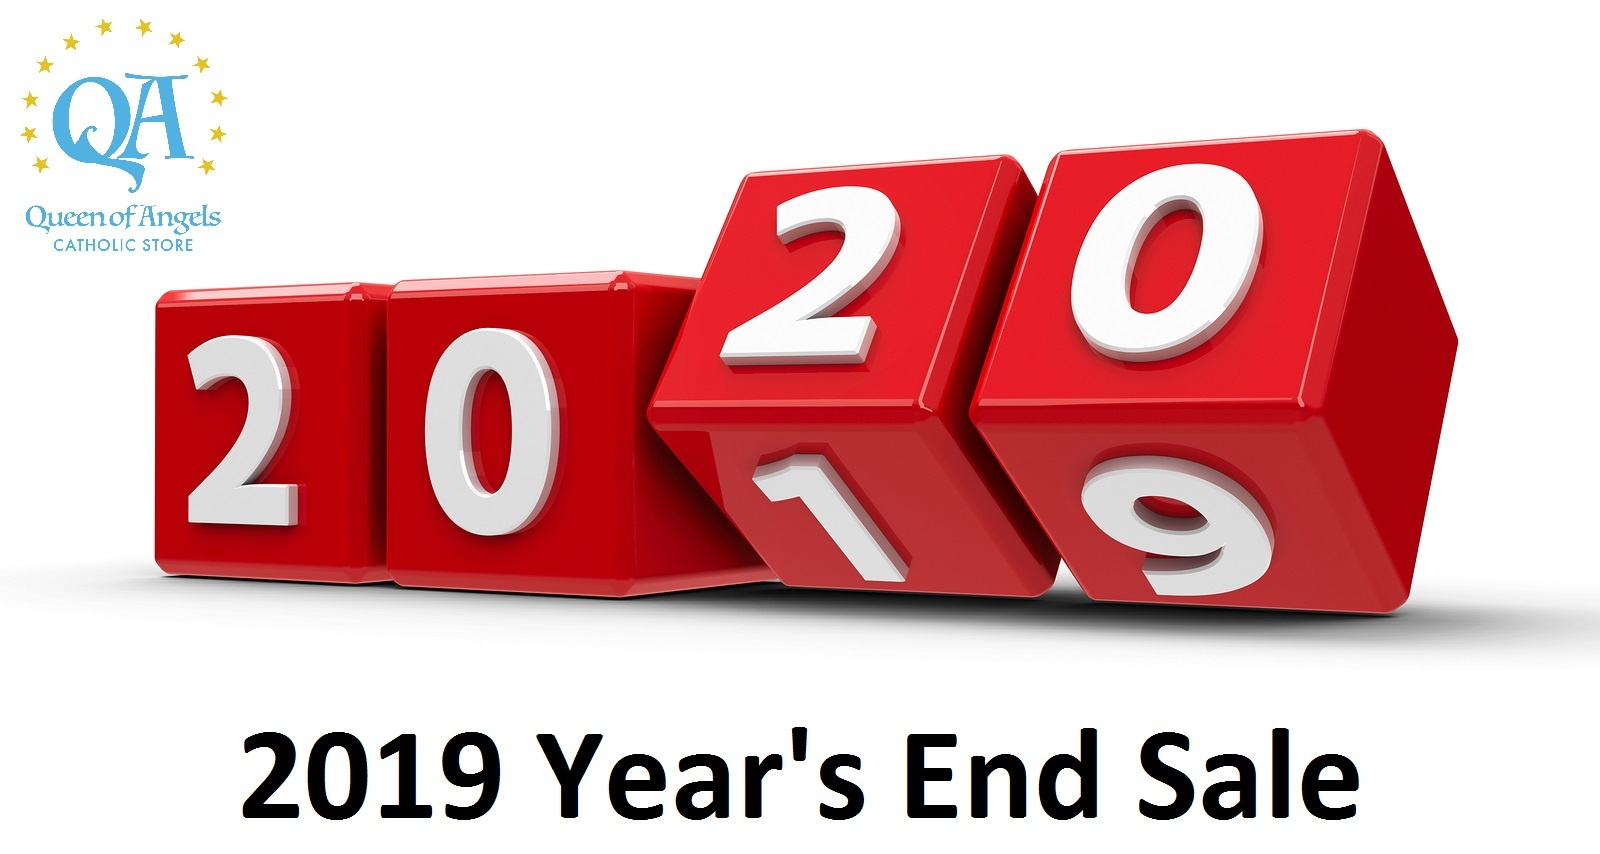 2019 Year's End Sale